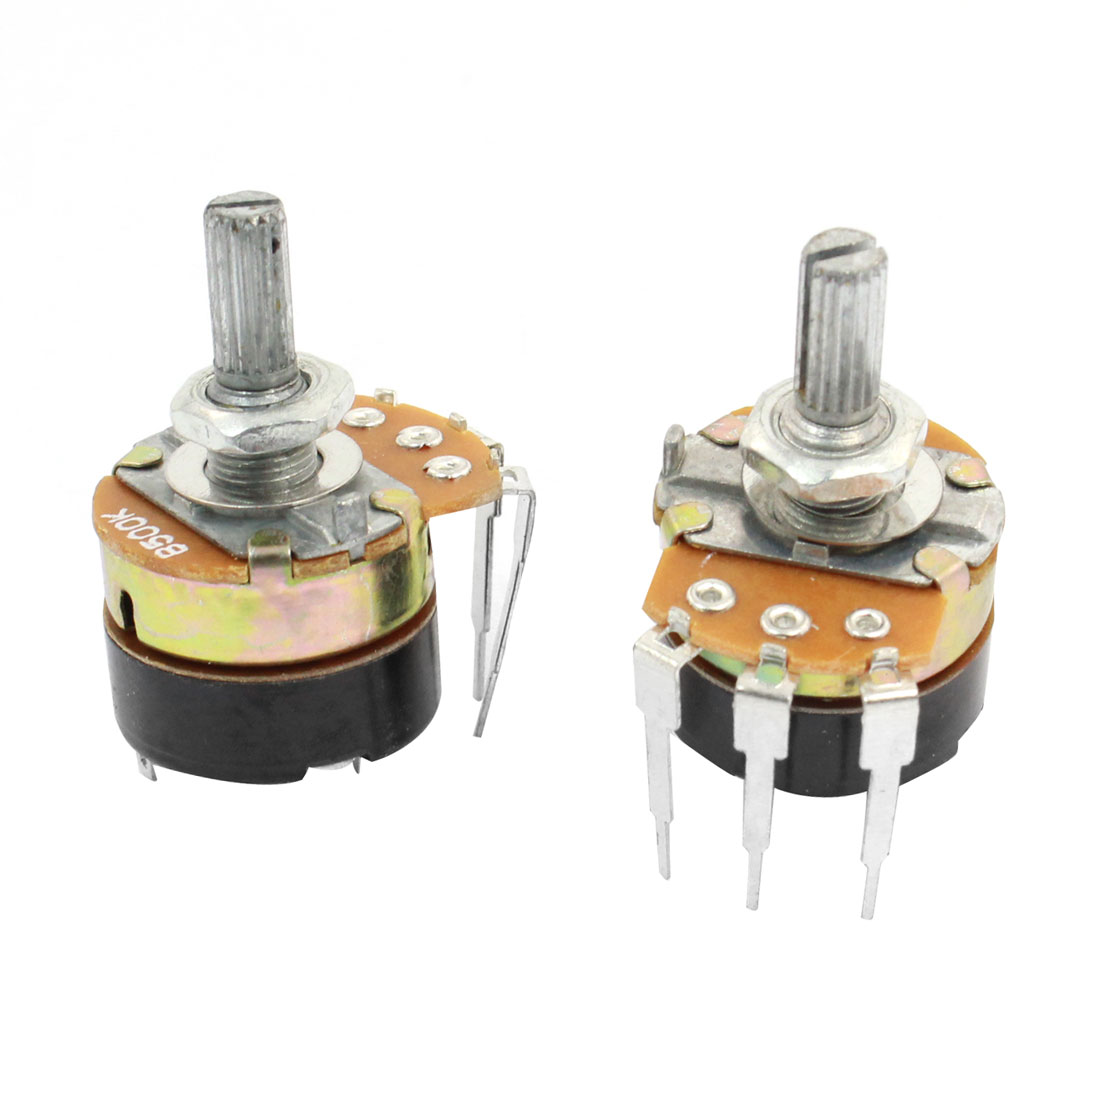 2Pcs B500K 500K Ohm 6mm Knurled Split Shaft Rotary Switch Carbon Potentiometers